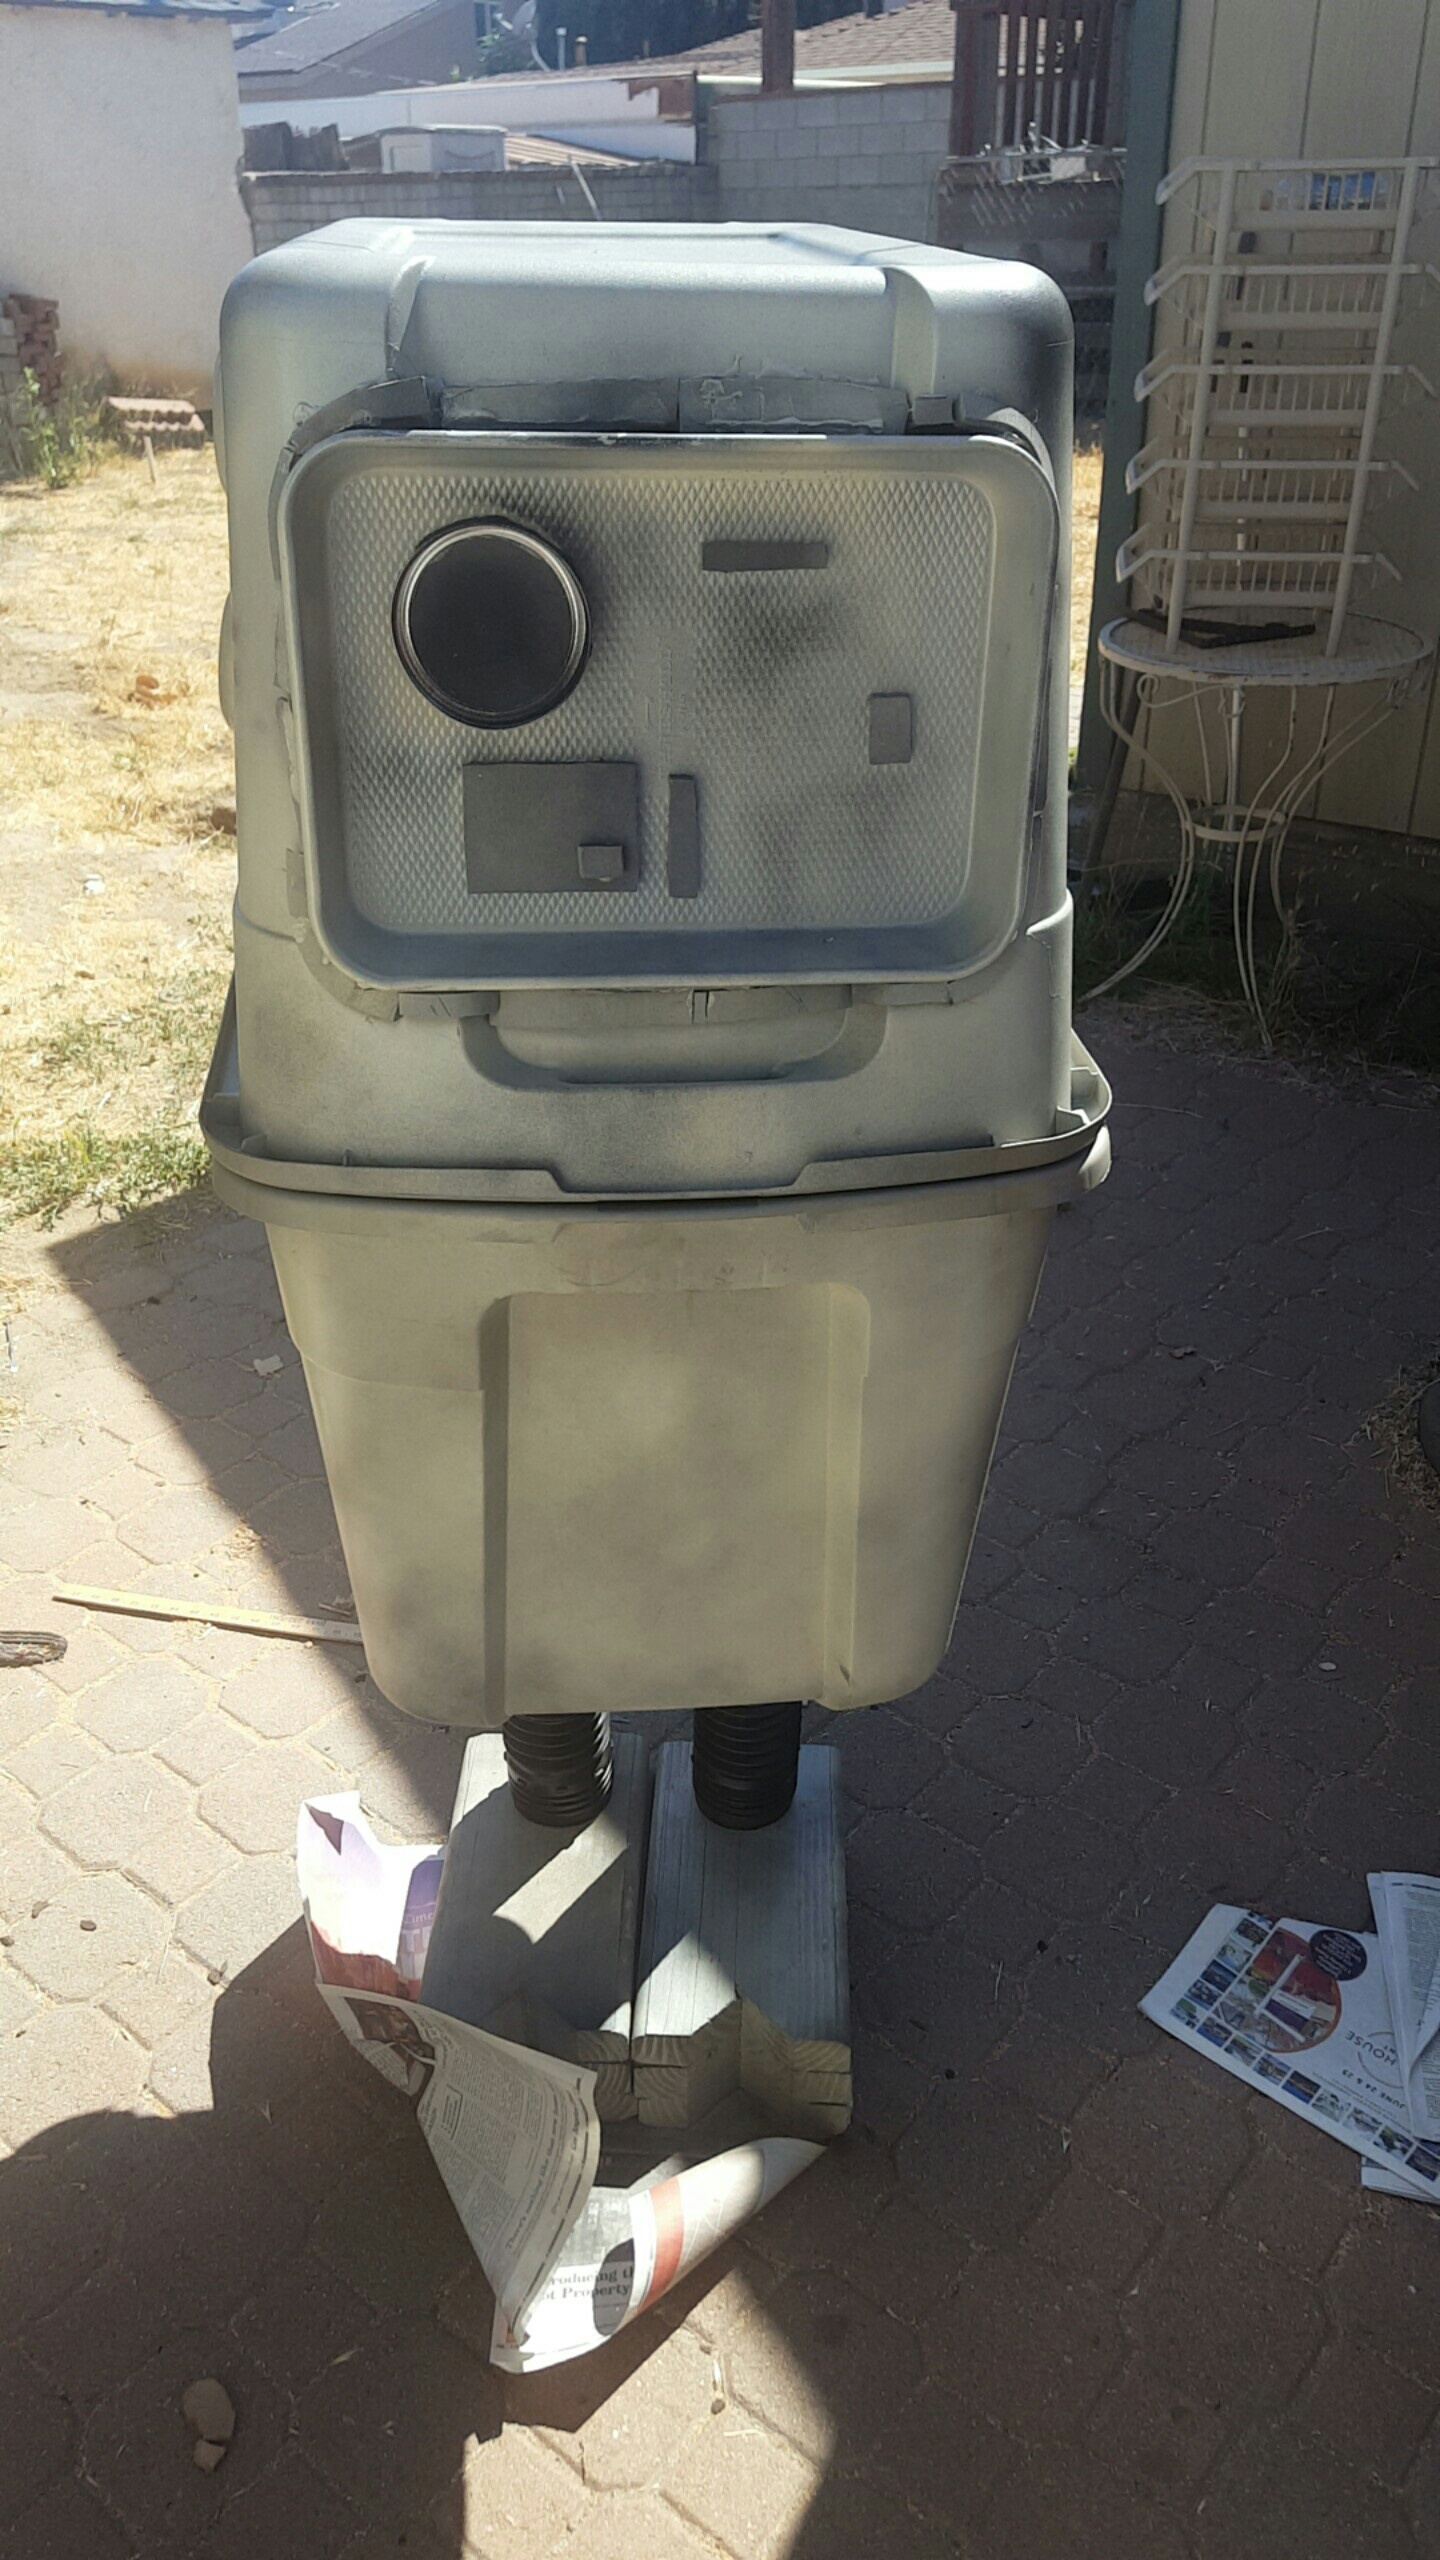 Gonk Droid Front View Rpf Costume And Prop Maker Community